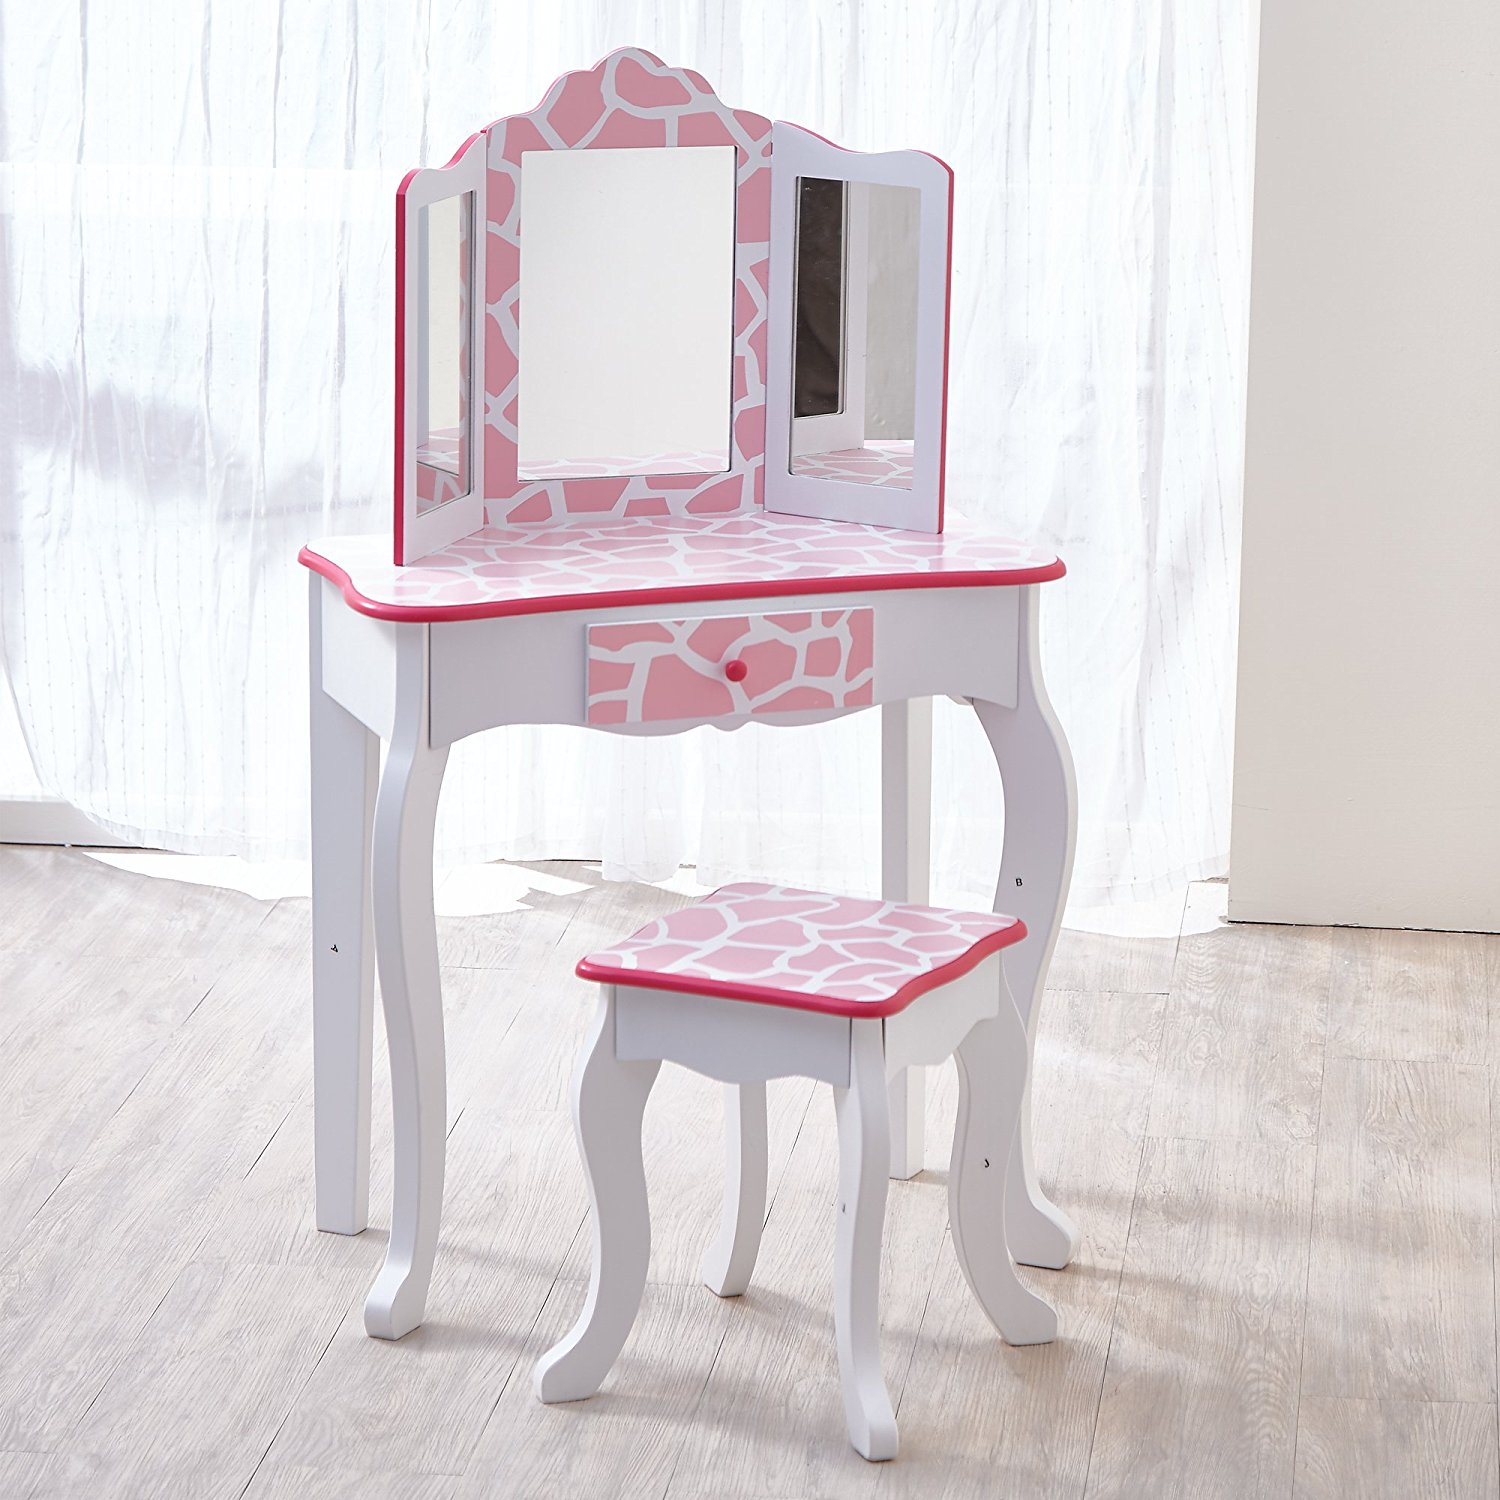 Get Quotations Teamson Kids Fashion Prints S Vanity Table And Stool Set With Mirror Giraffe